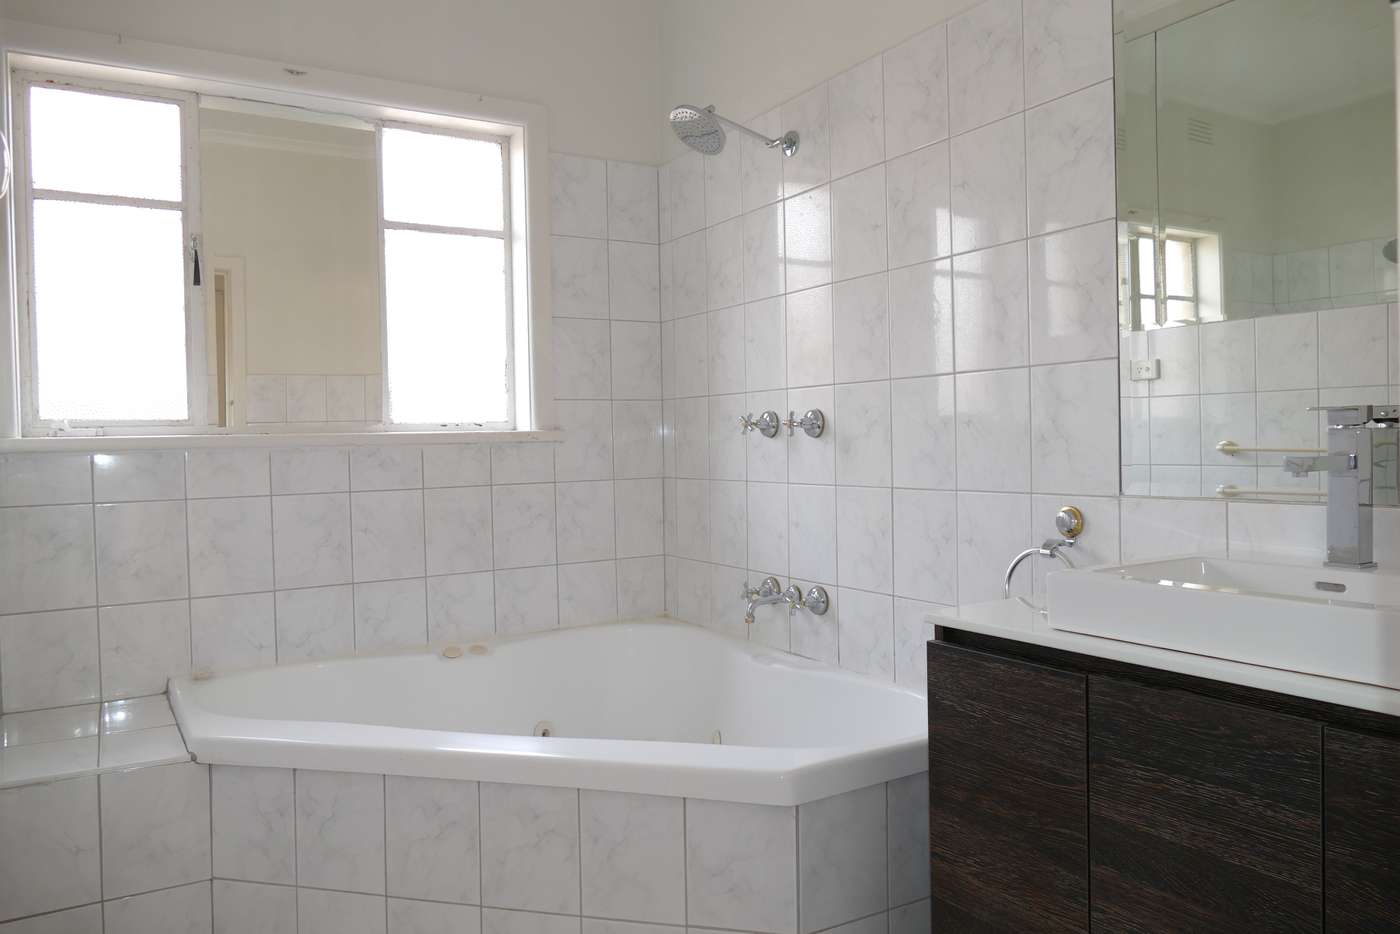 Seventh view of Homely house listing, 6 The Rialto, Malvern East VIC 3145